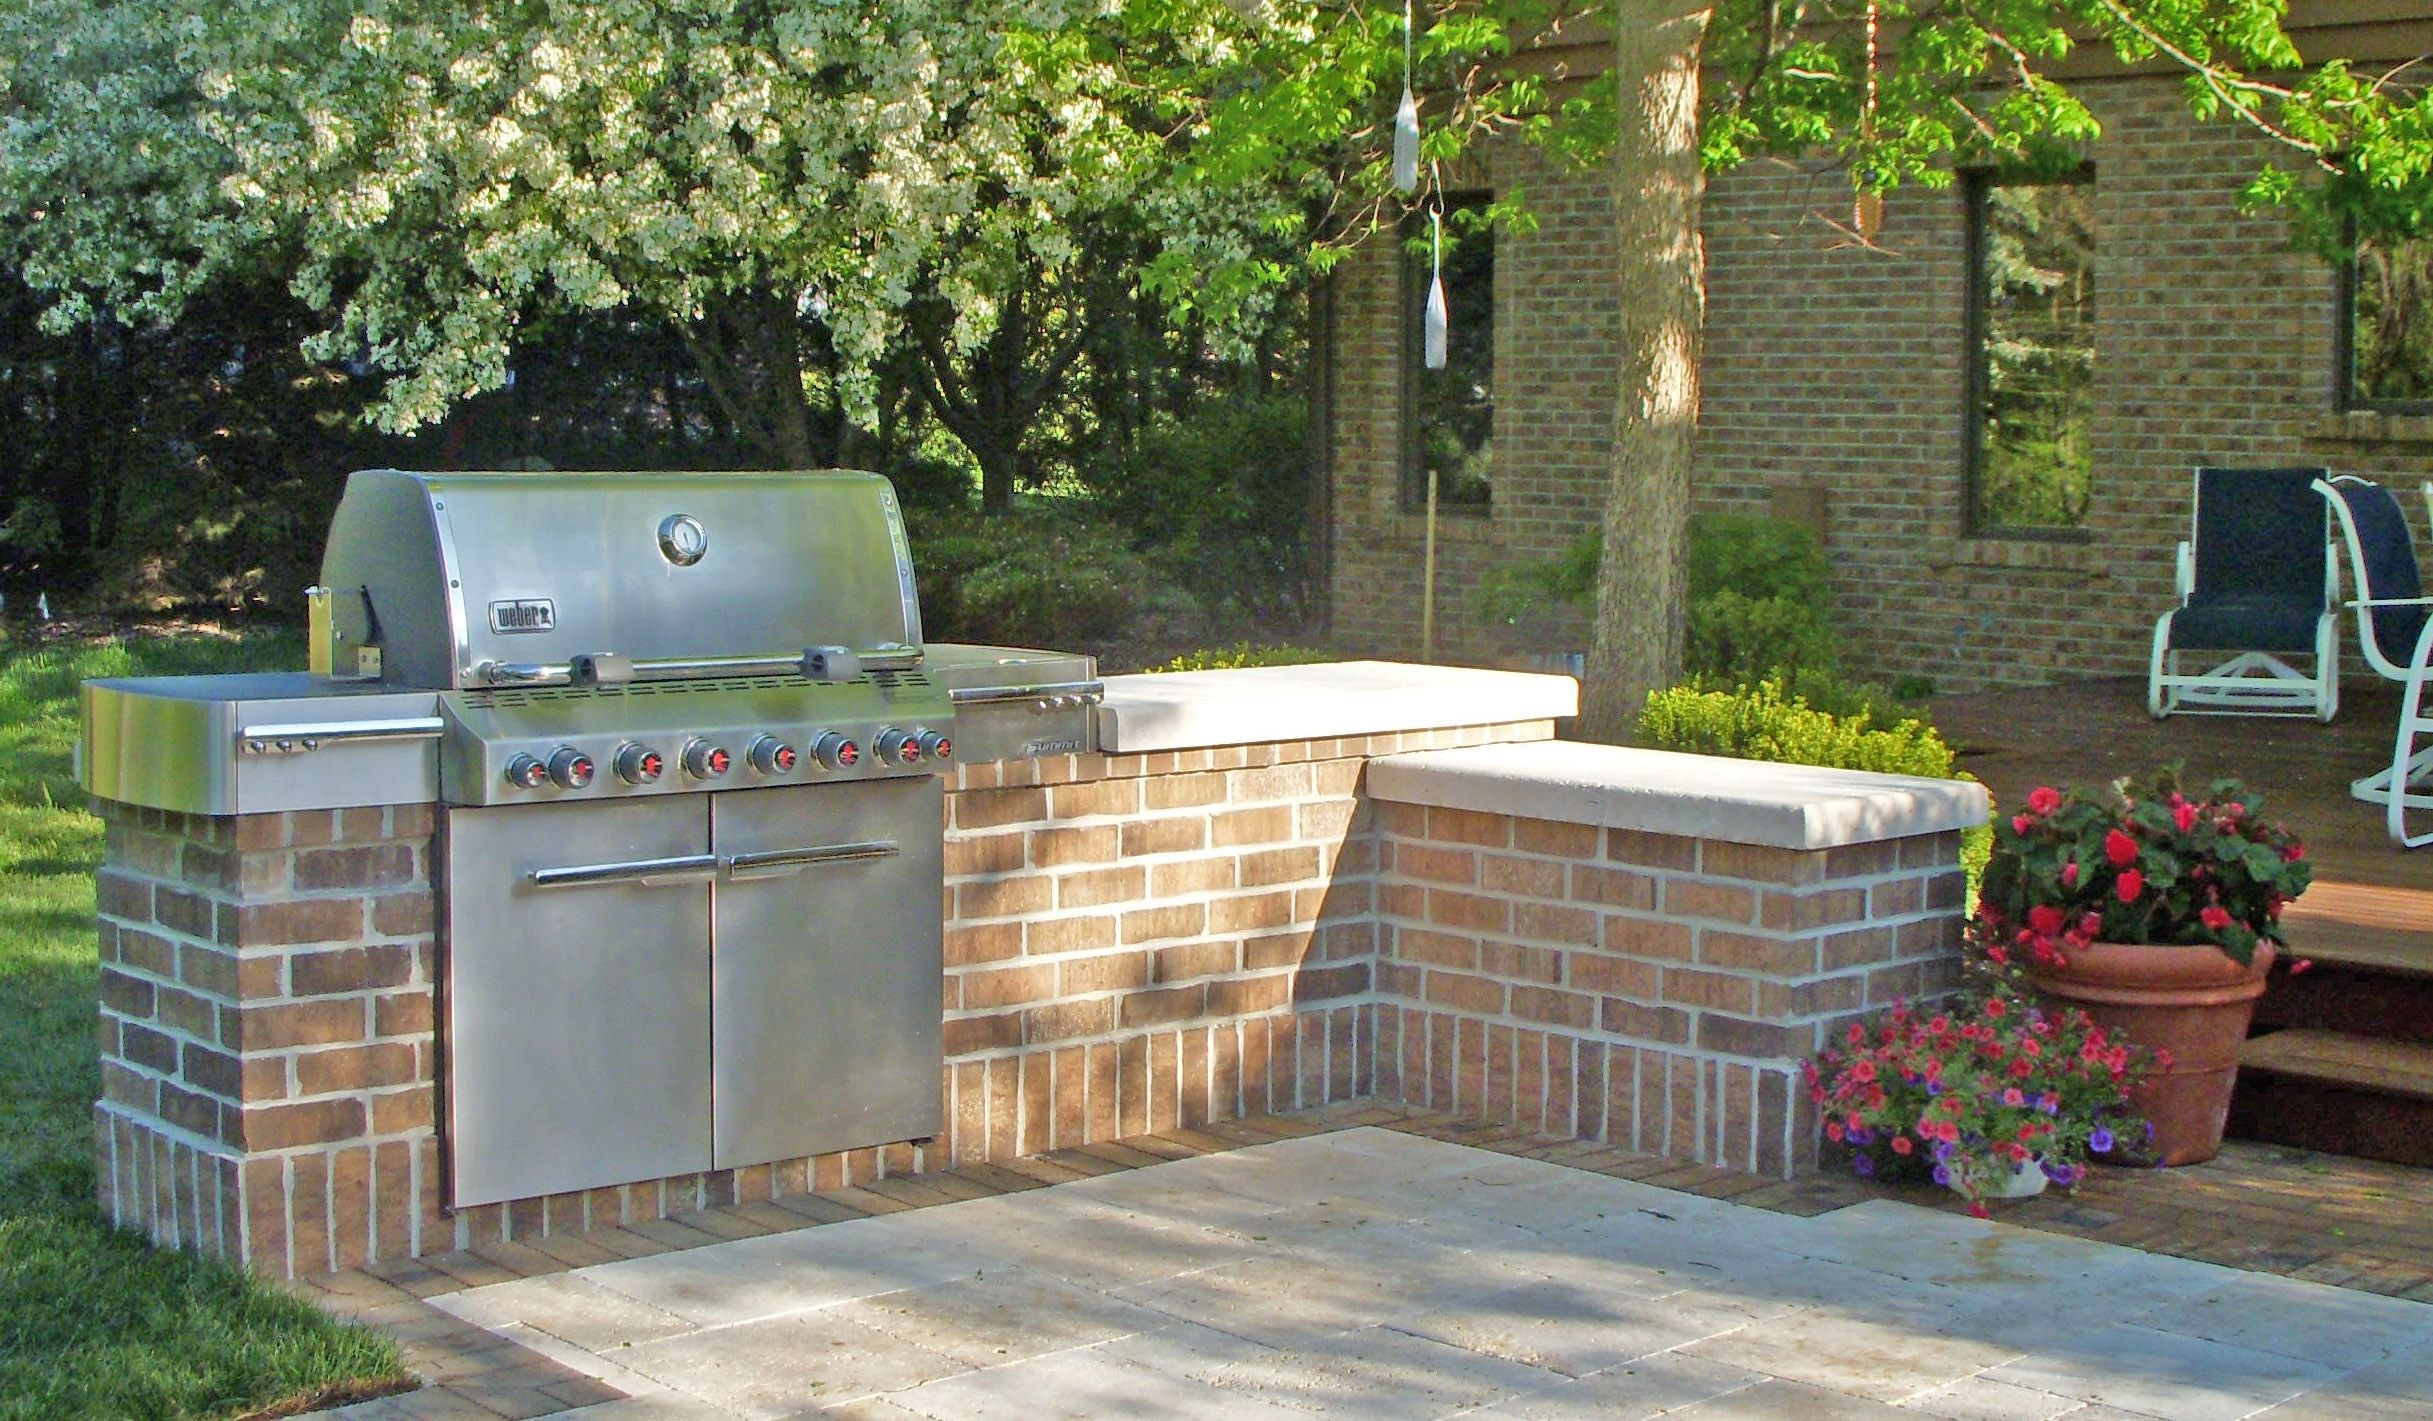 gas grill built into mortared brick surround with waukesha buff